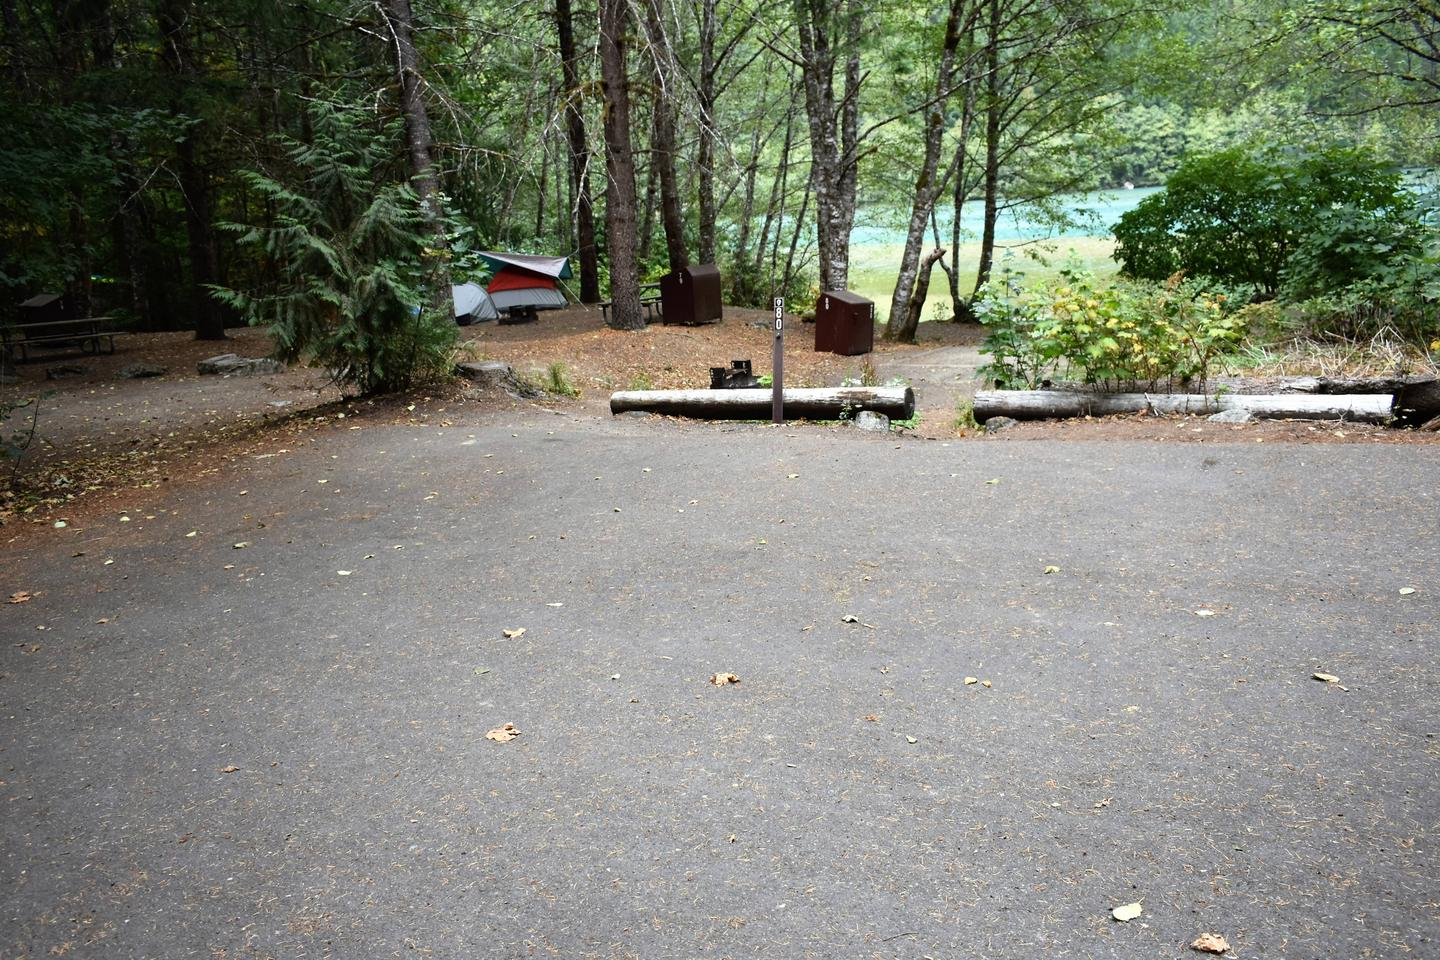 Parking areaView of parking area